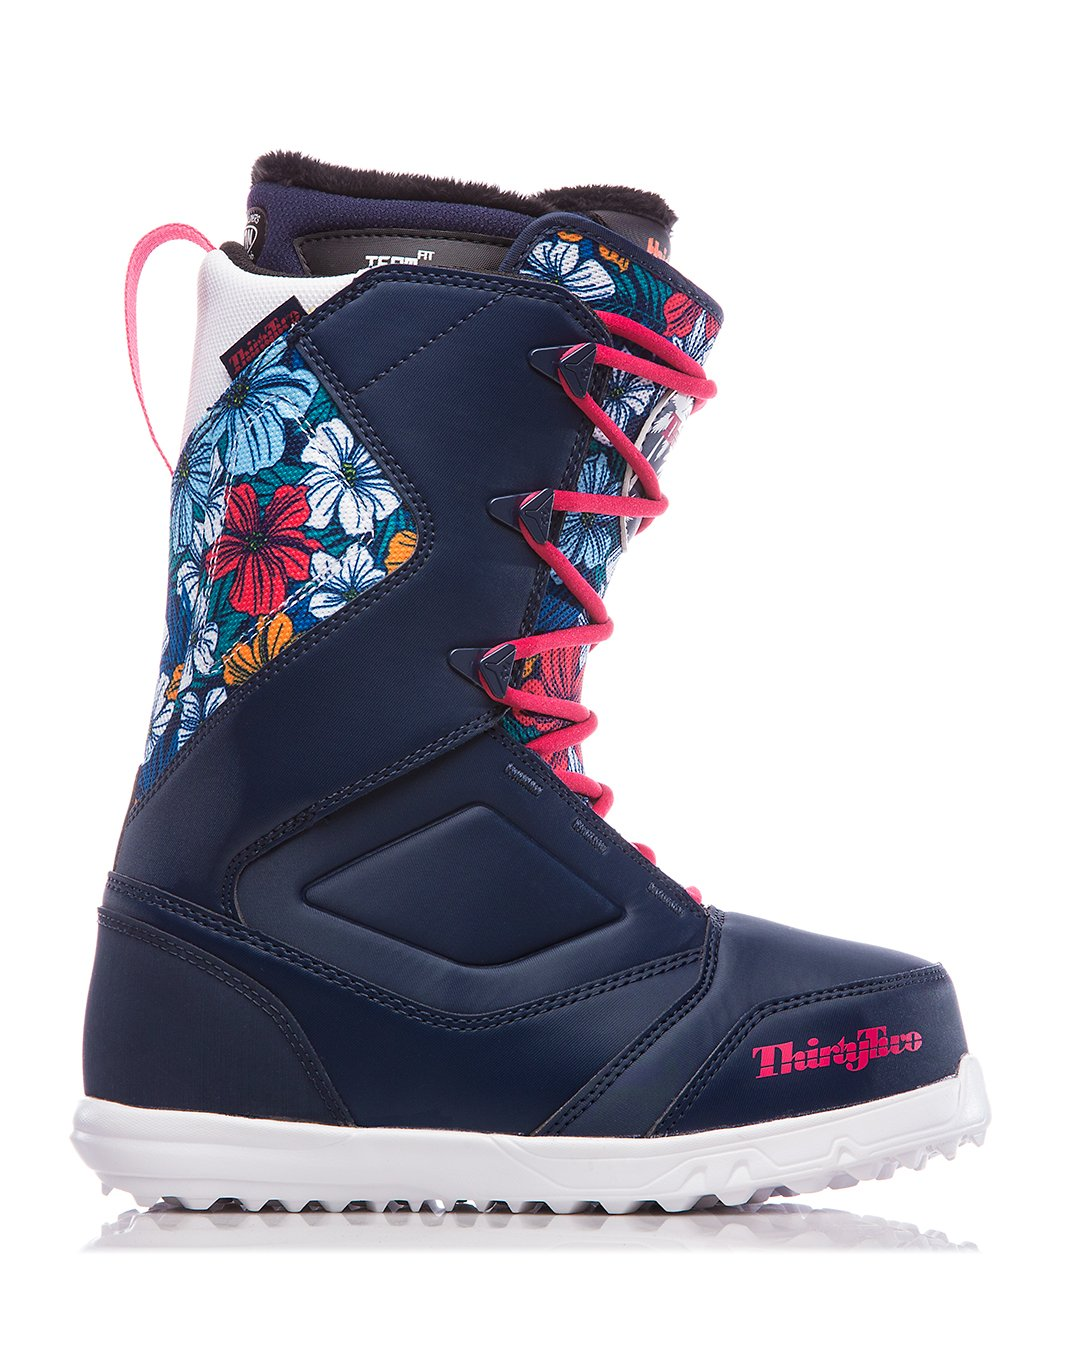 2019 Thirtytwo Zephyr Women's Snowboard Boots